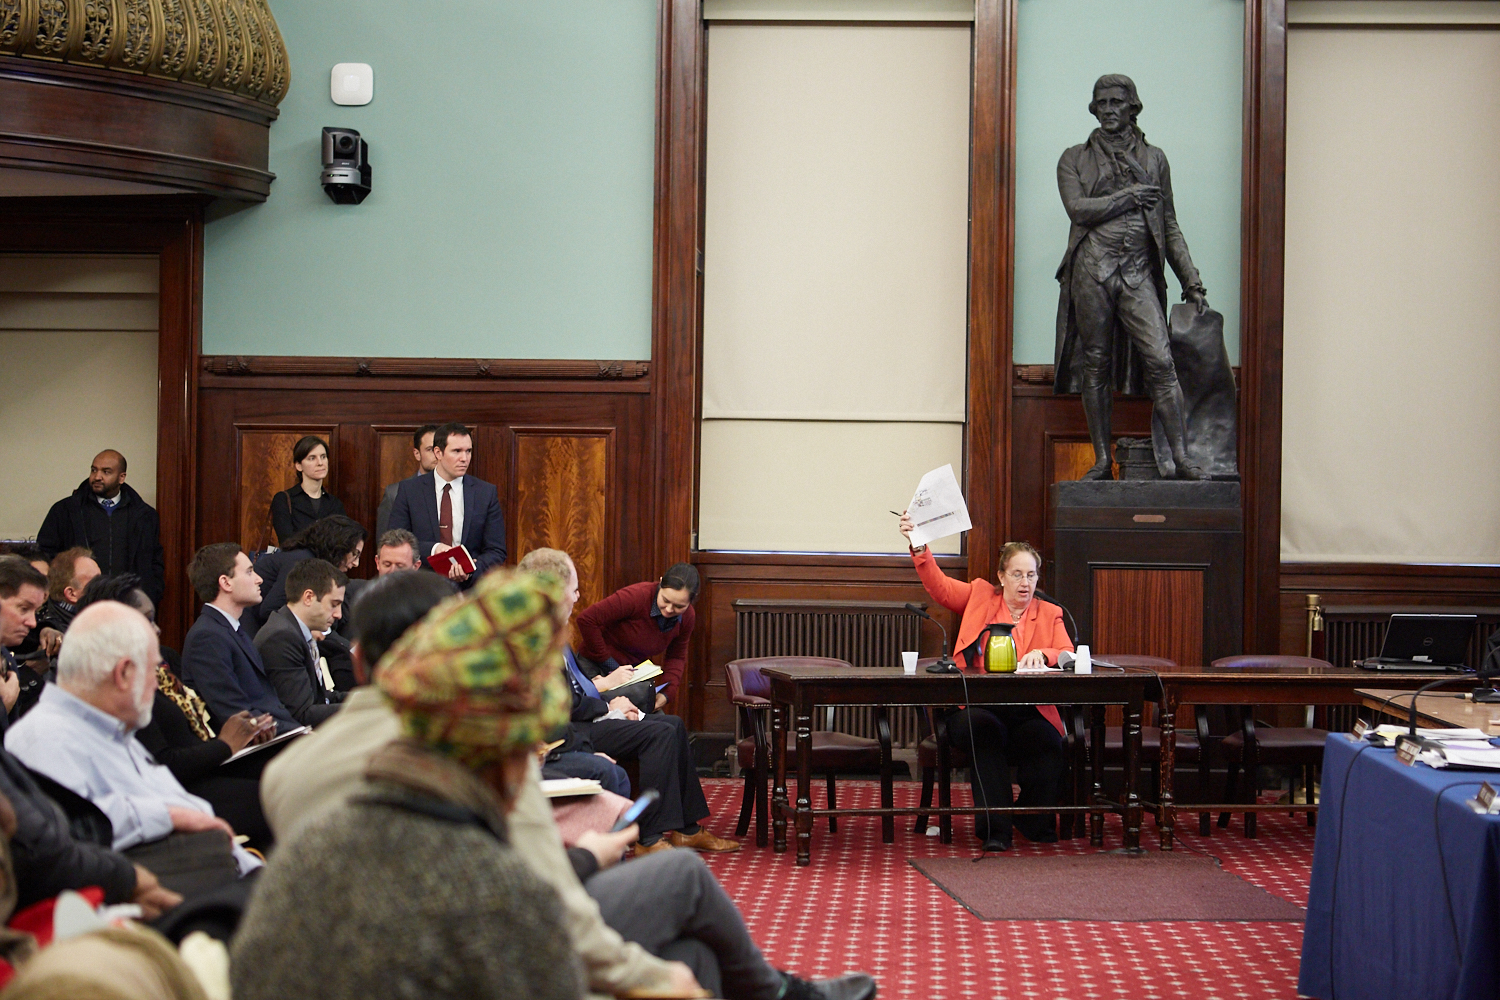 Gale Brewer addressing a hearing on housing affordablity at City Hall in Manhattan.